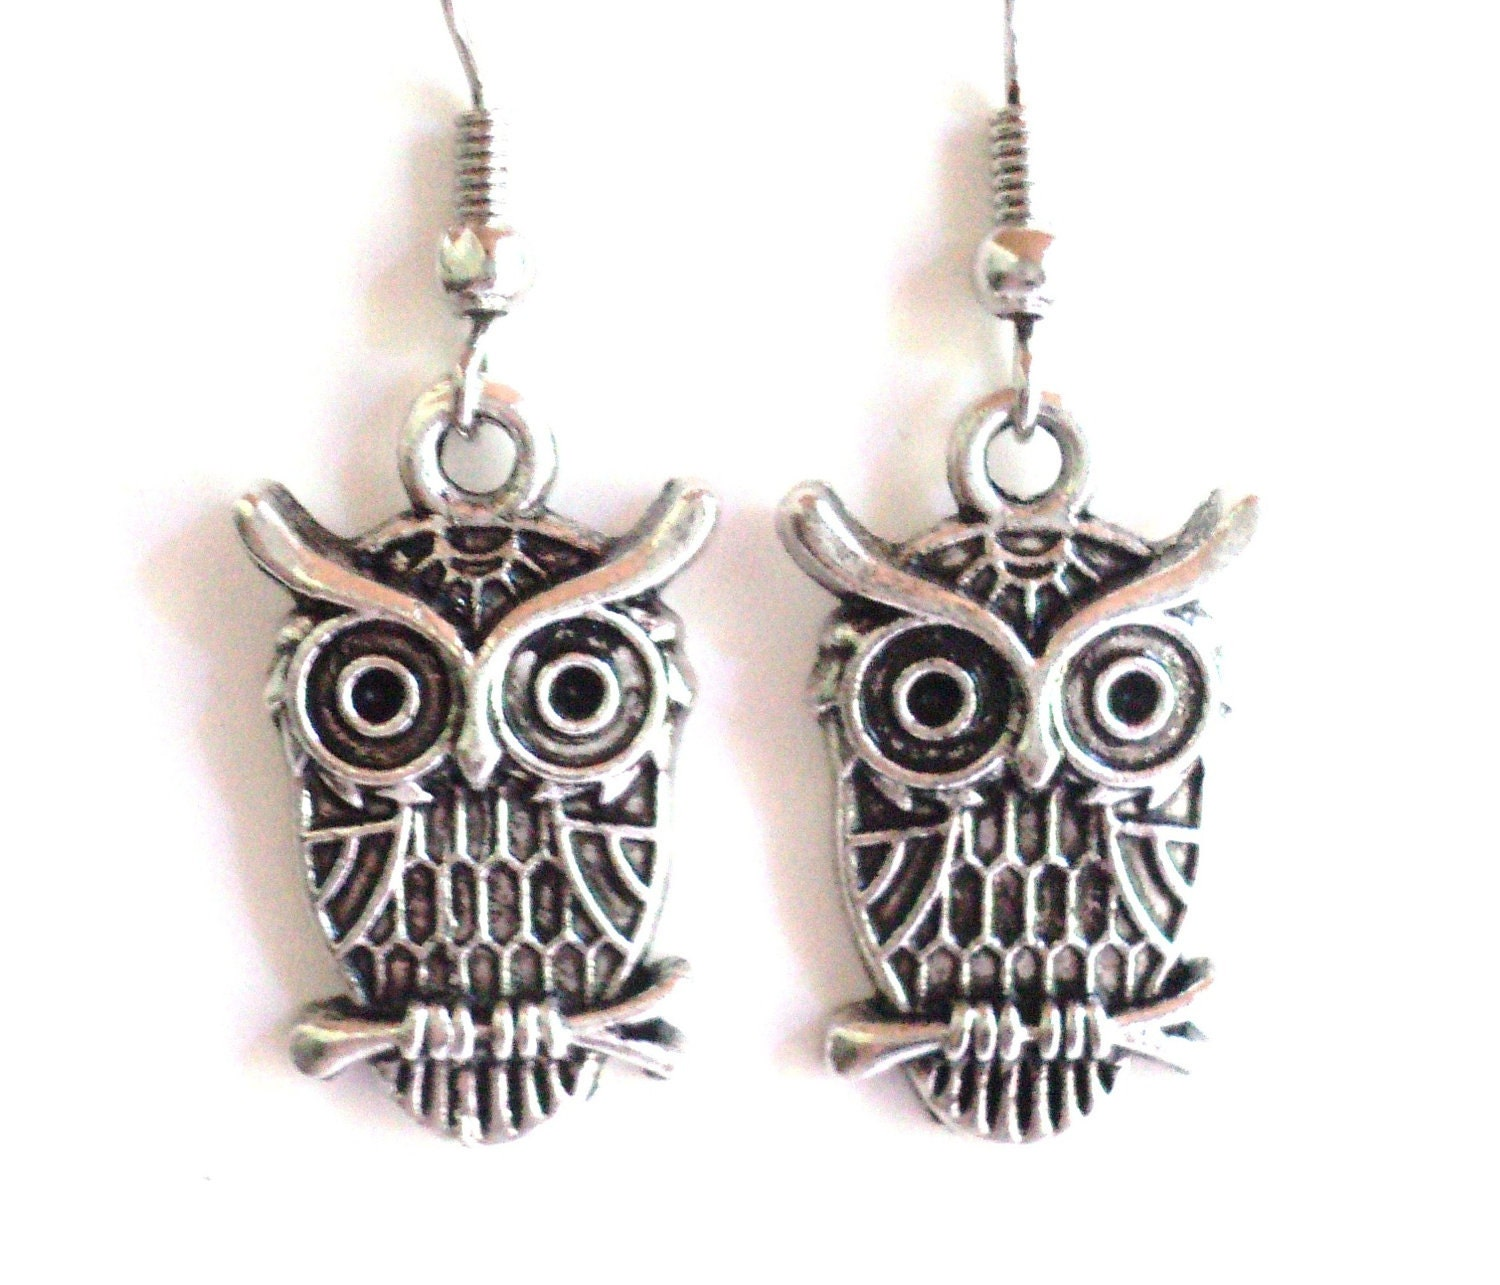 Owl Earrings Unique Gift For Her Christmas Stocking Stuffer